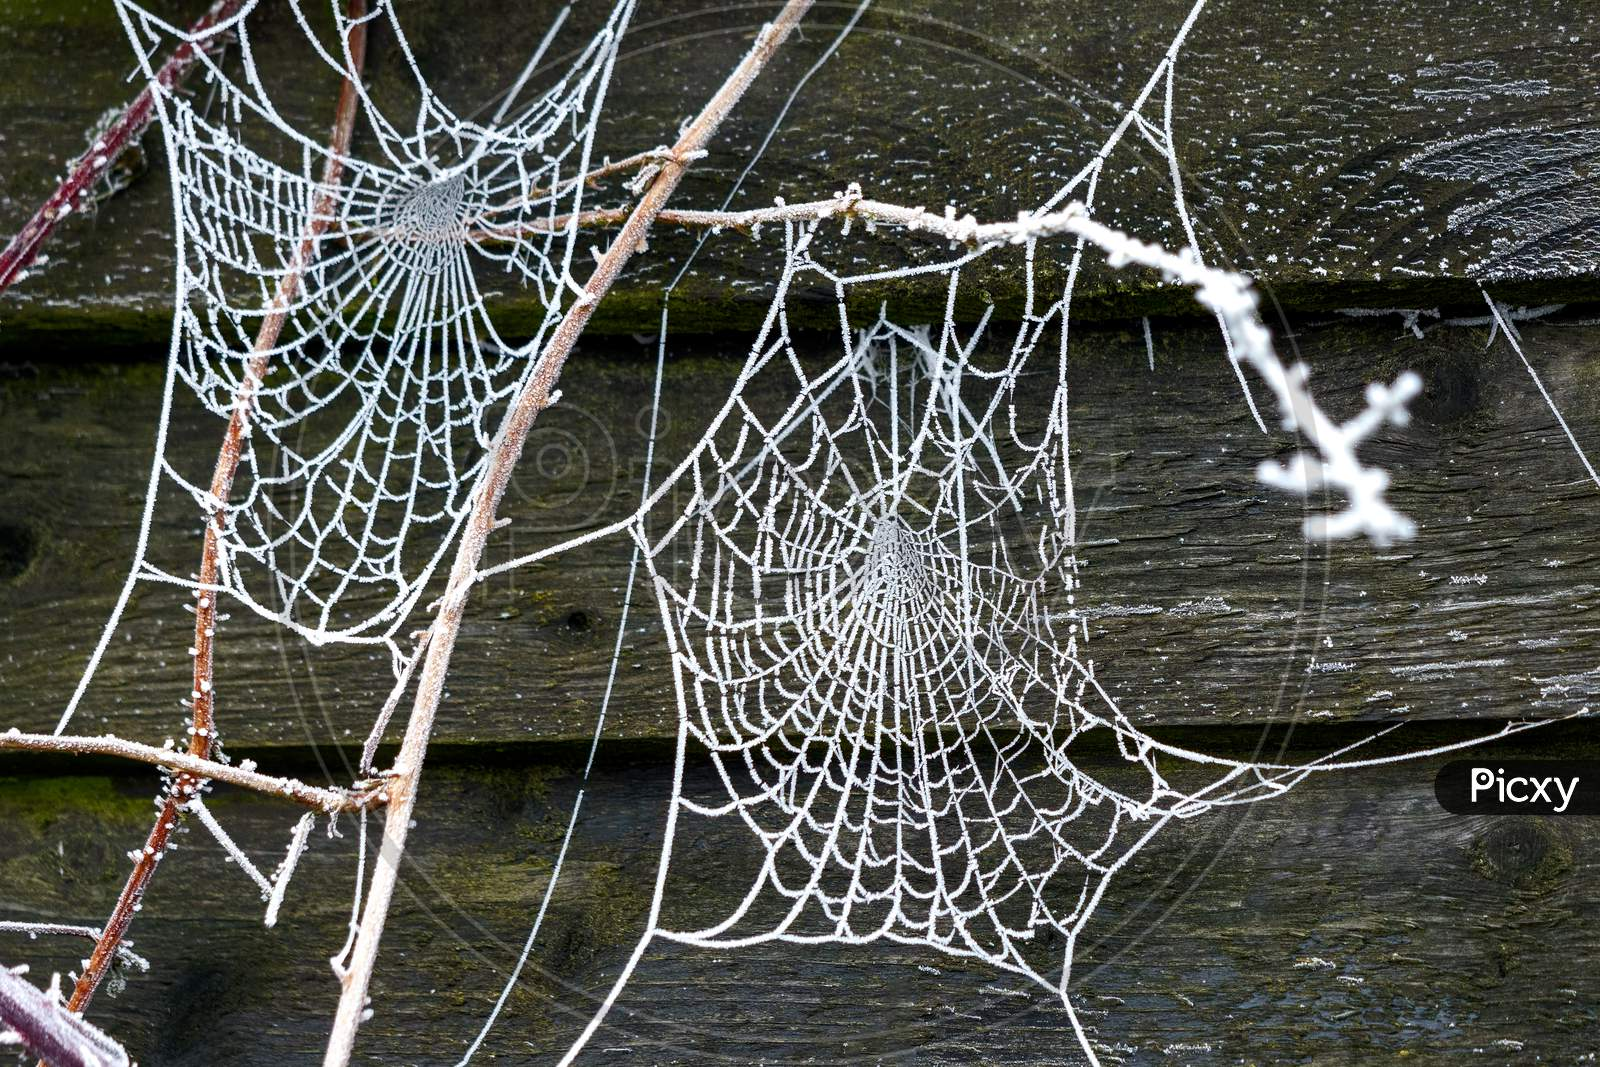 Spiders Web Glistening With Hoar Frost On A Winters Morning